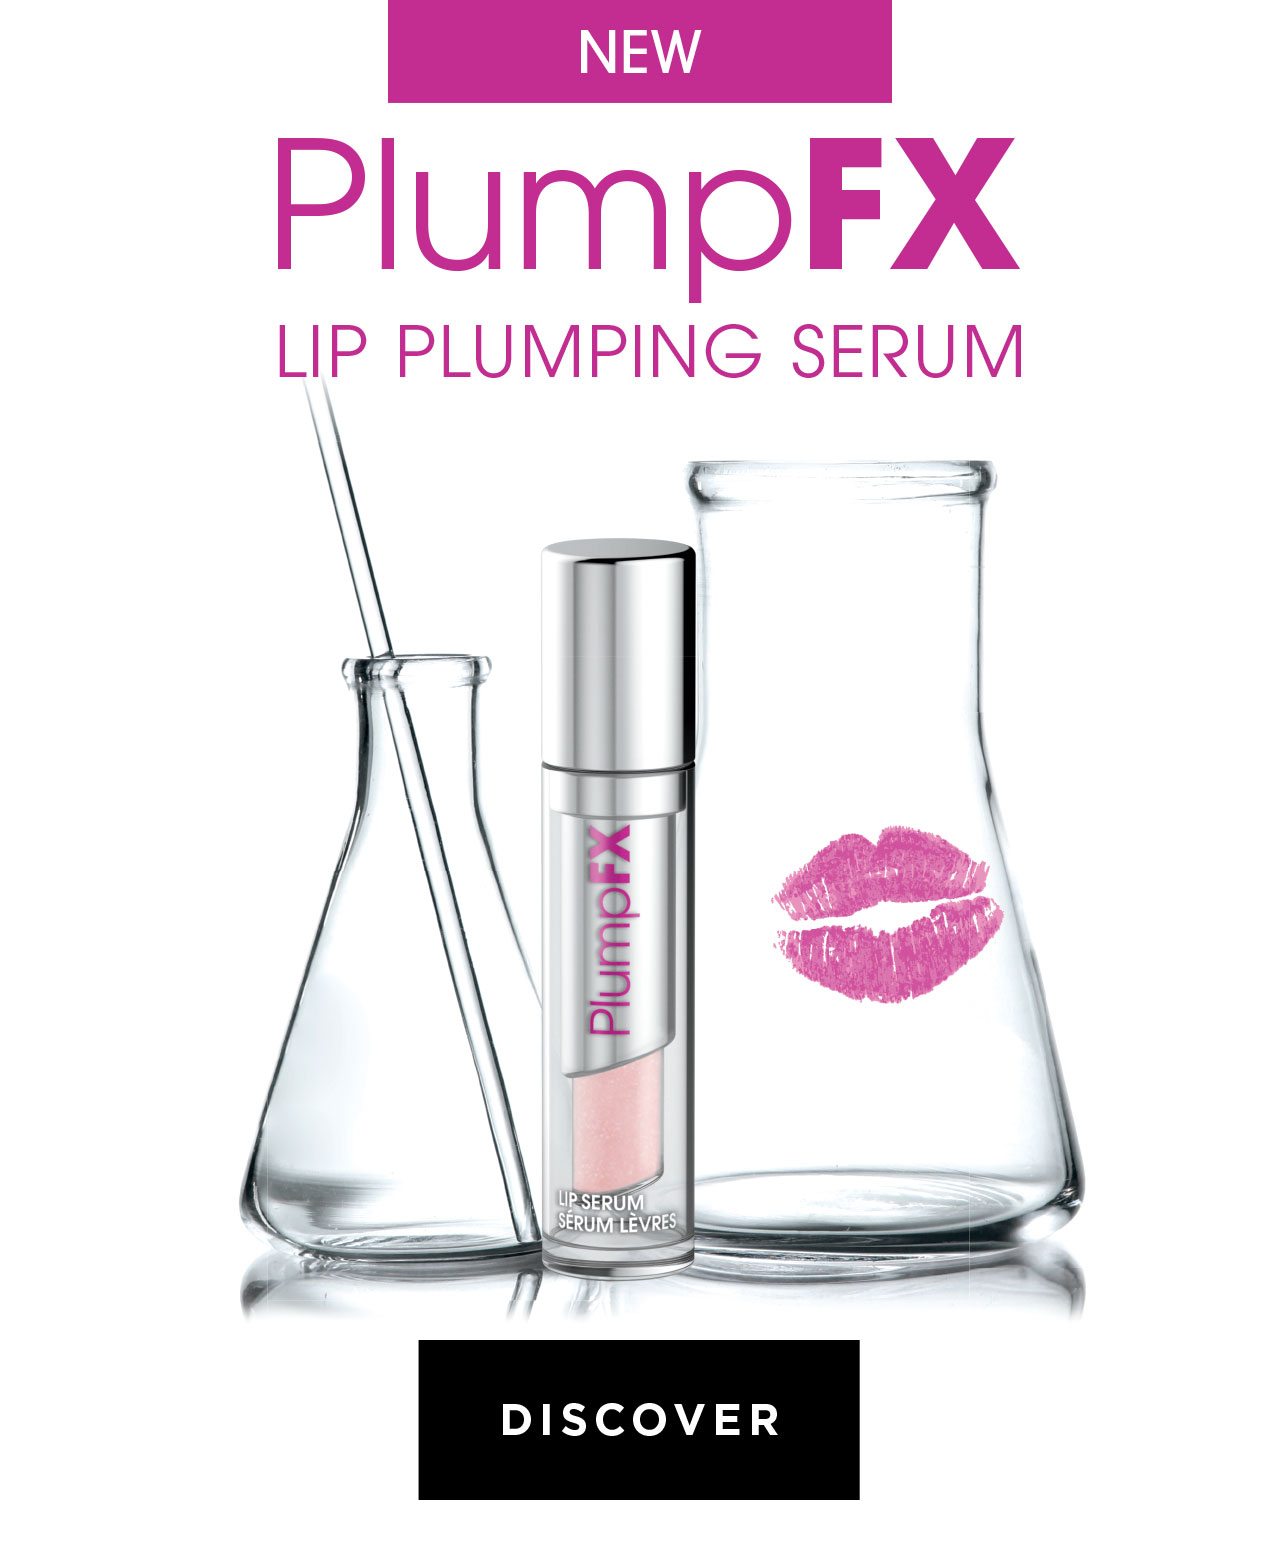 New PlumpFX lip plumping serum